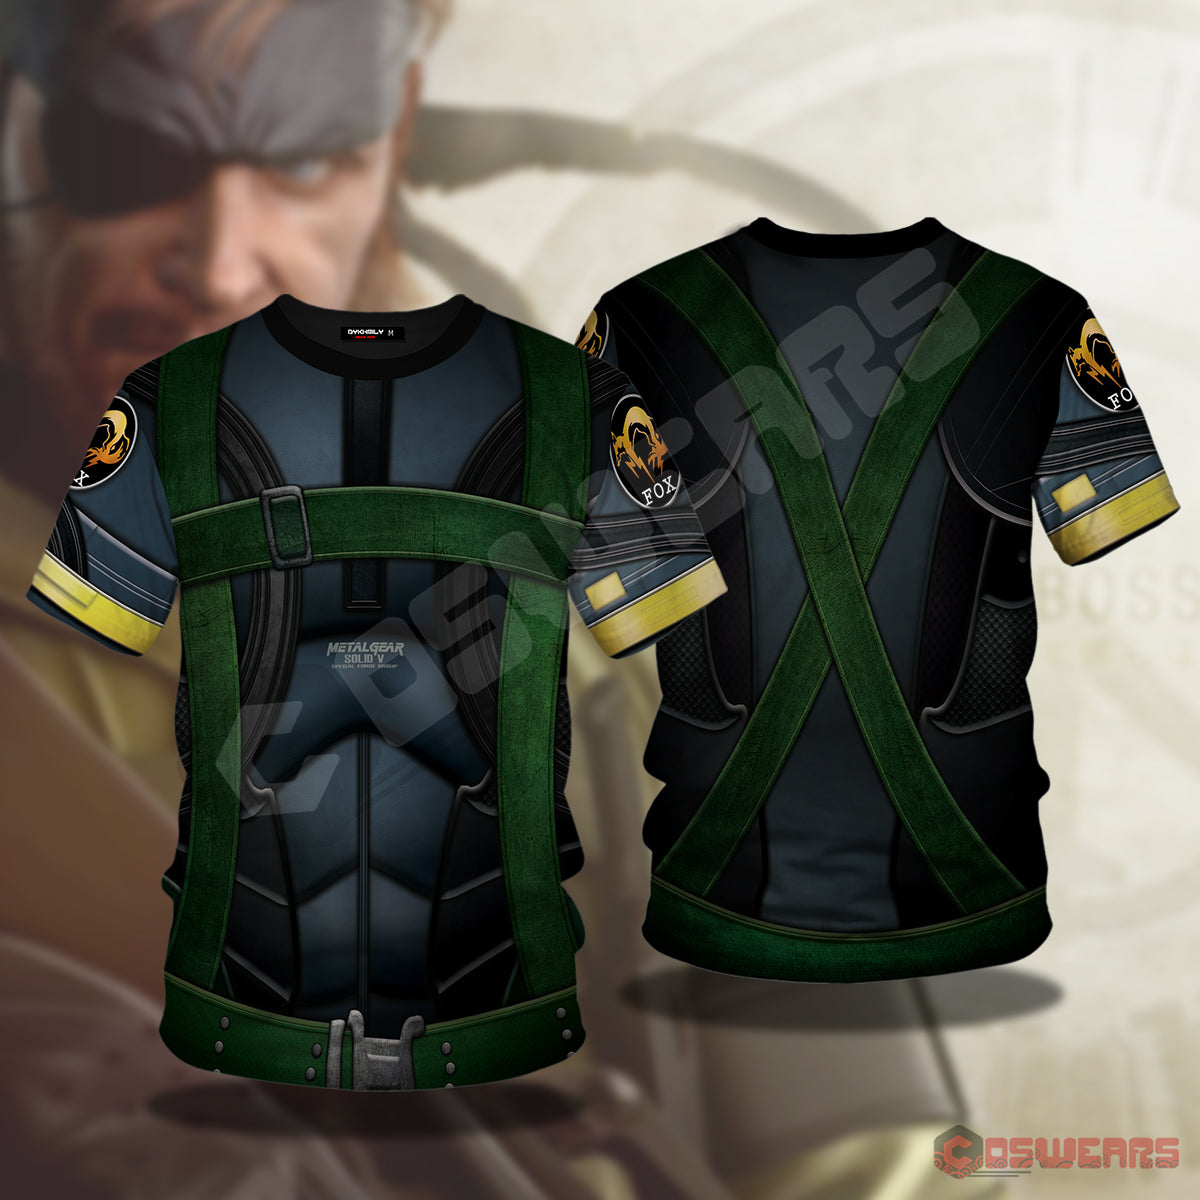 Metal Gear Solid : Solid Snake Inspired T-Shirt